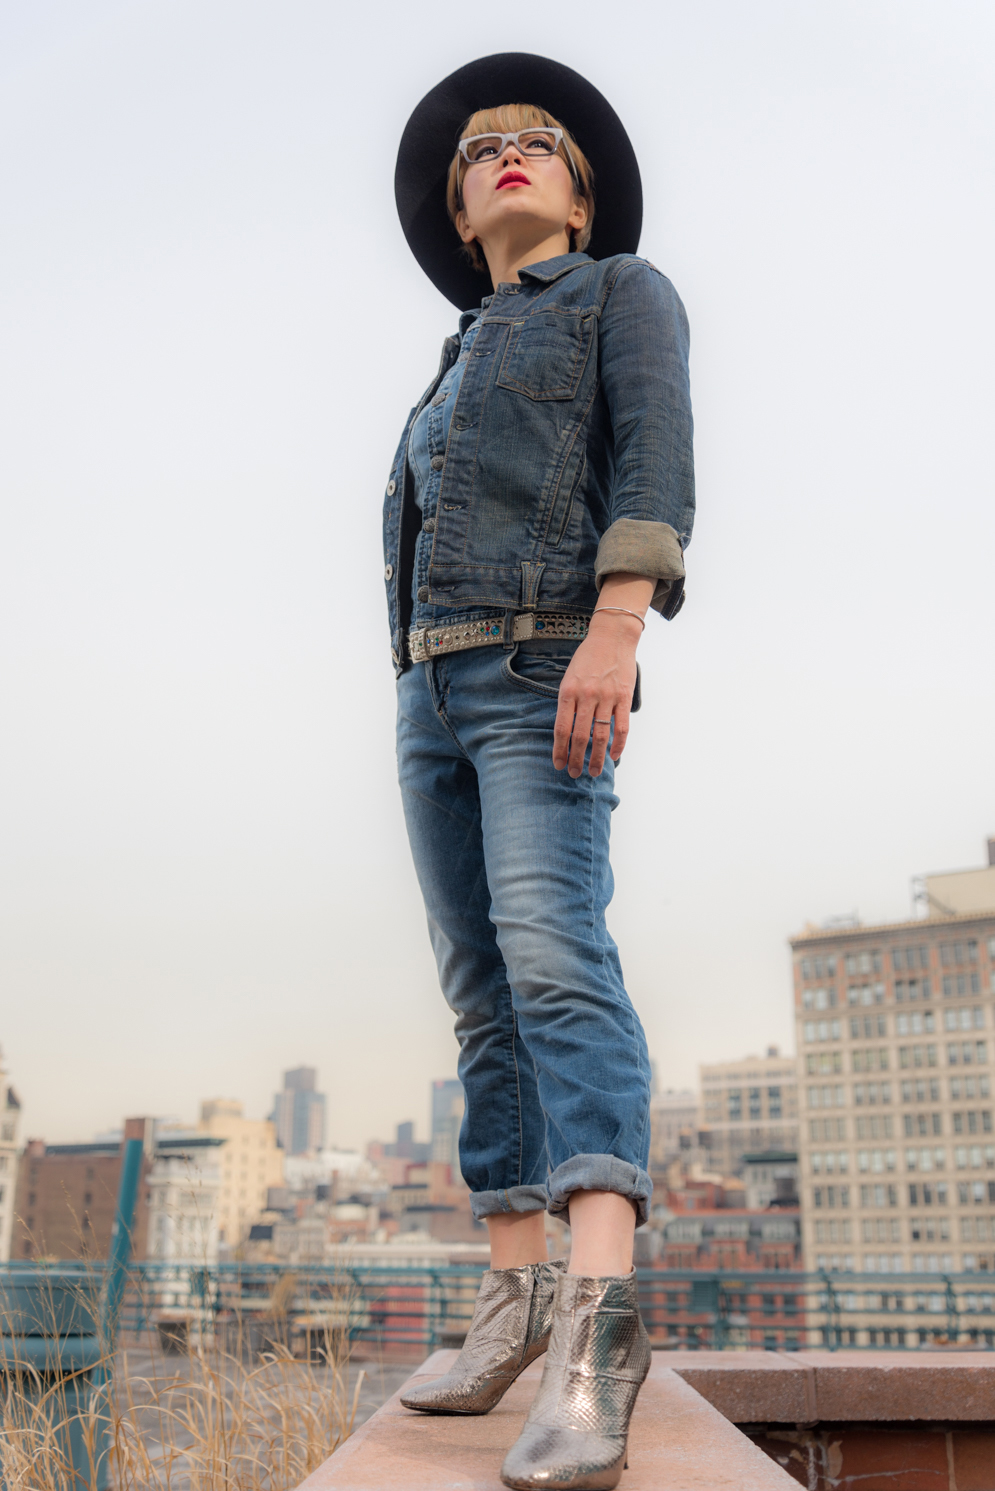 ROCK MAMA NYC LIFESTYLE BLOG - HOW TO WE  AR DENIM ON DENIM